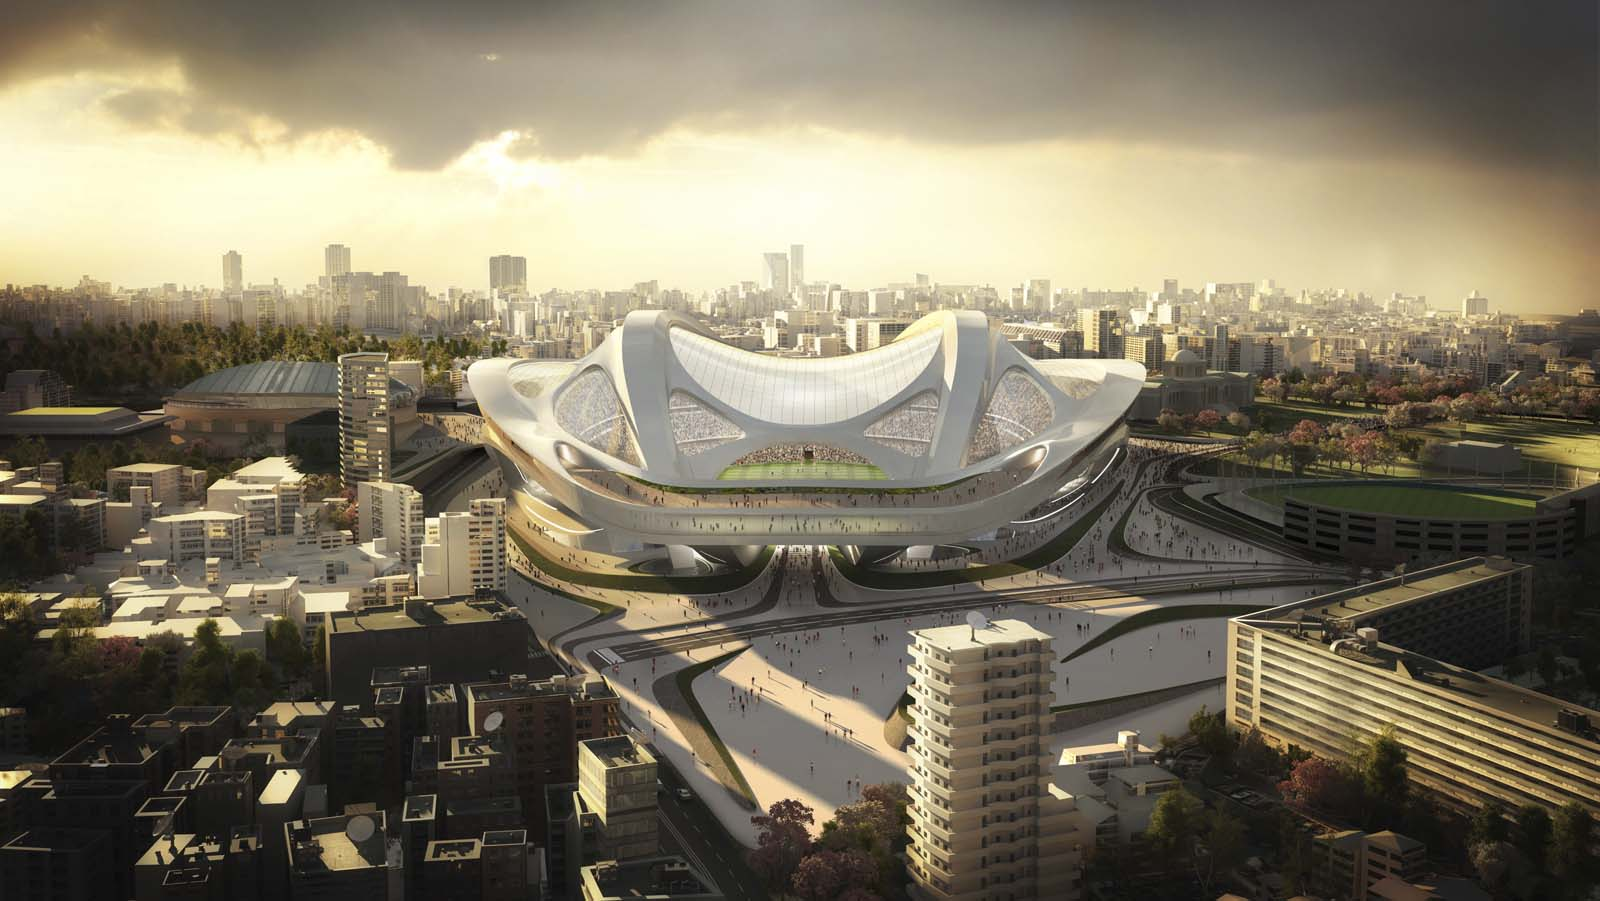 http://www.architecturelist.com/wp-content/uploads/2012/11/ZHA_New-National-Stadium-6.jpg